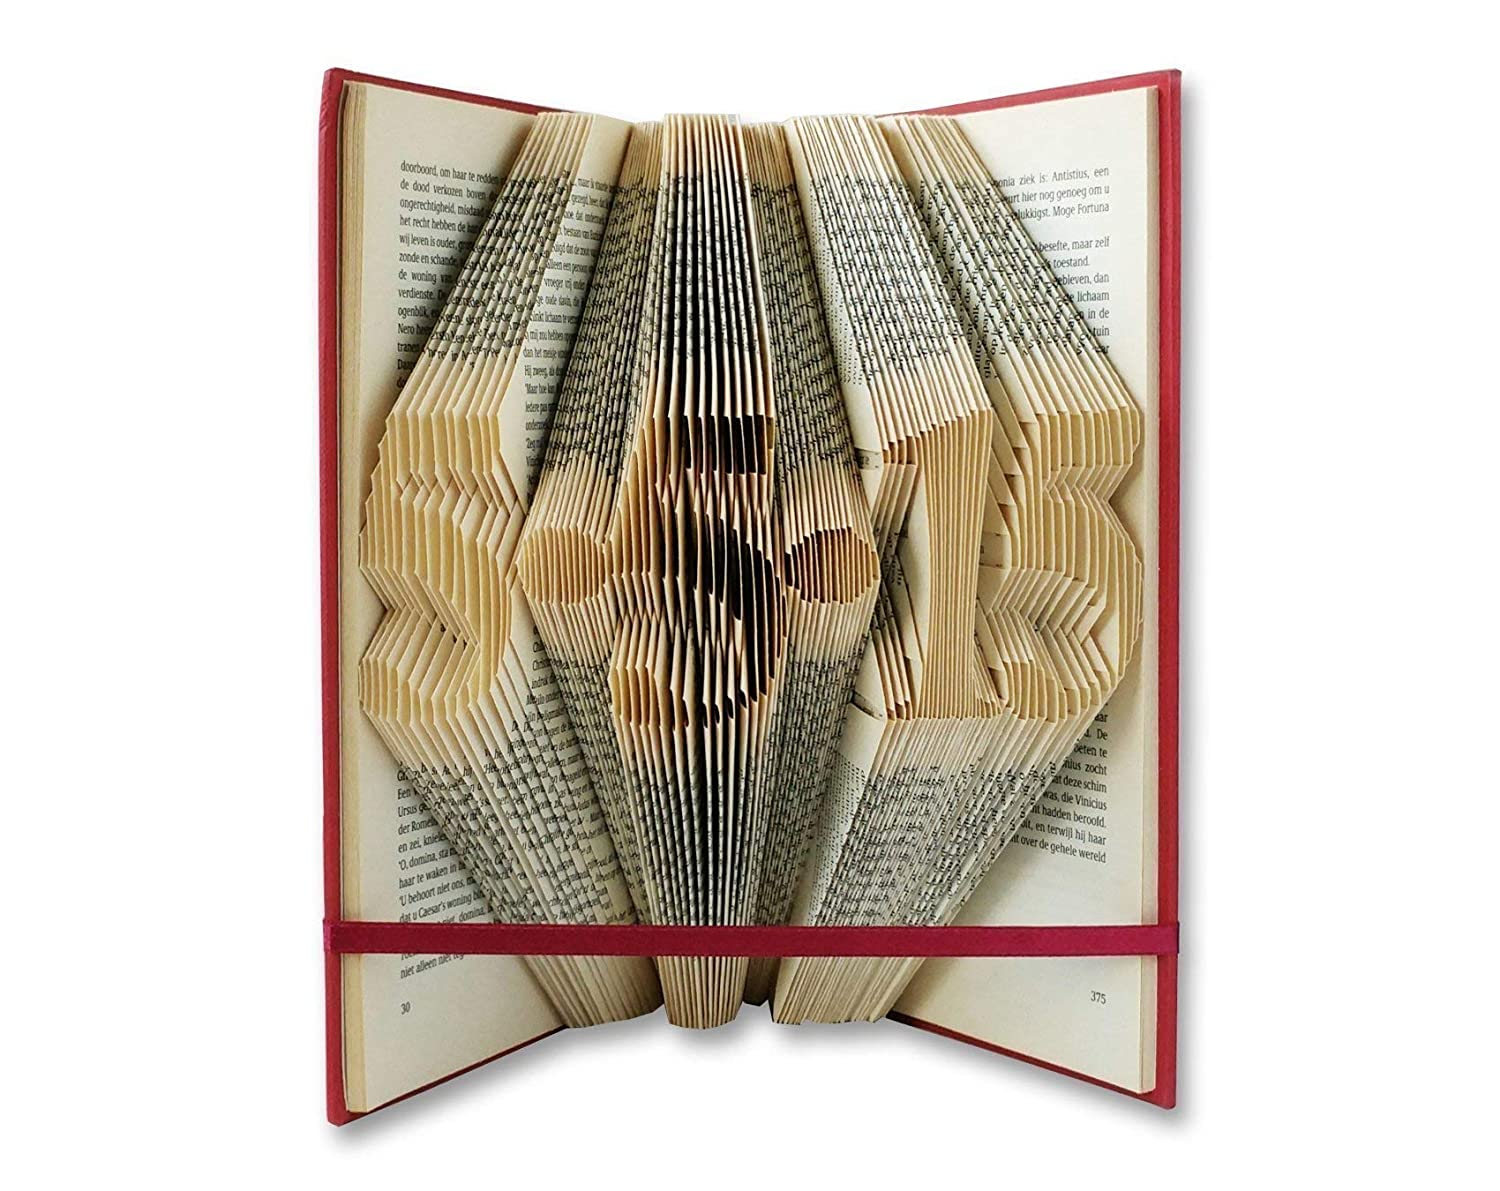 Save the Date customised by Folded Book Art - Free temporary upgrade to EXPEDITED shipping